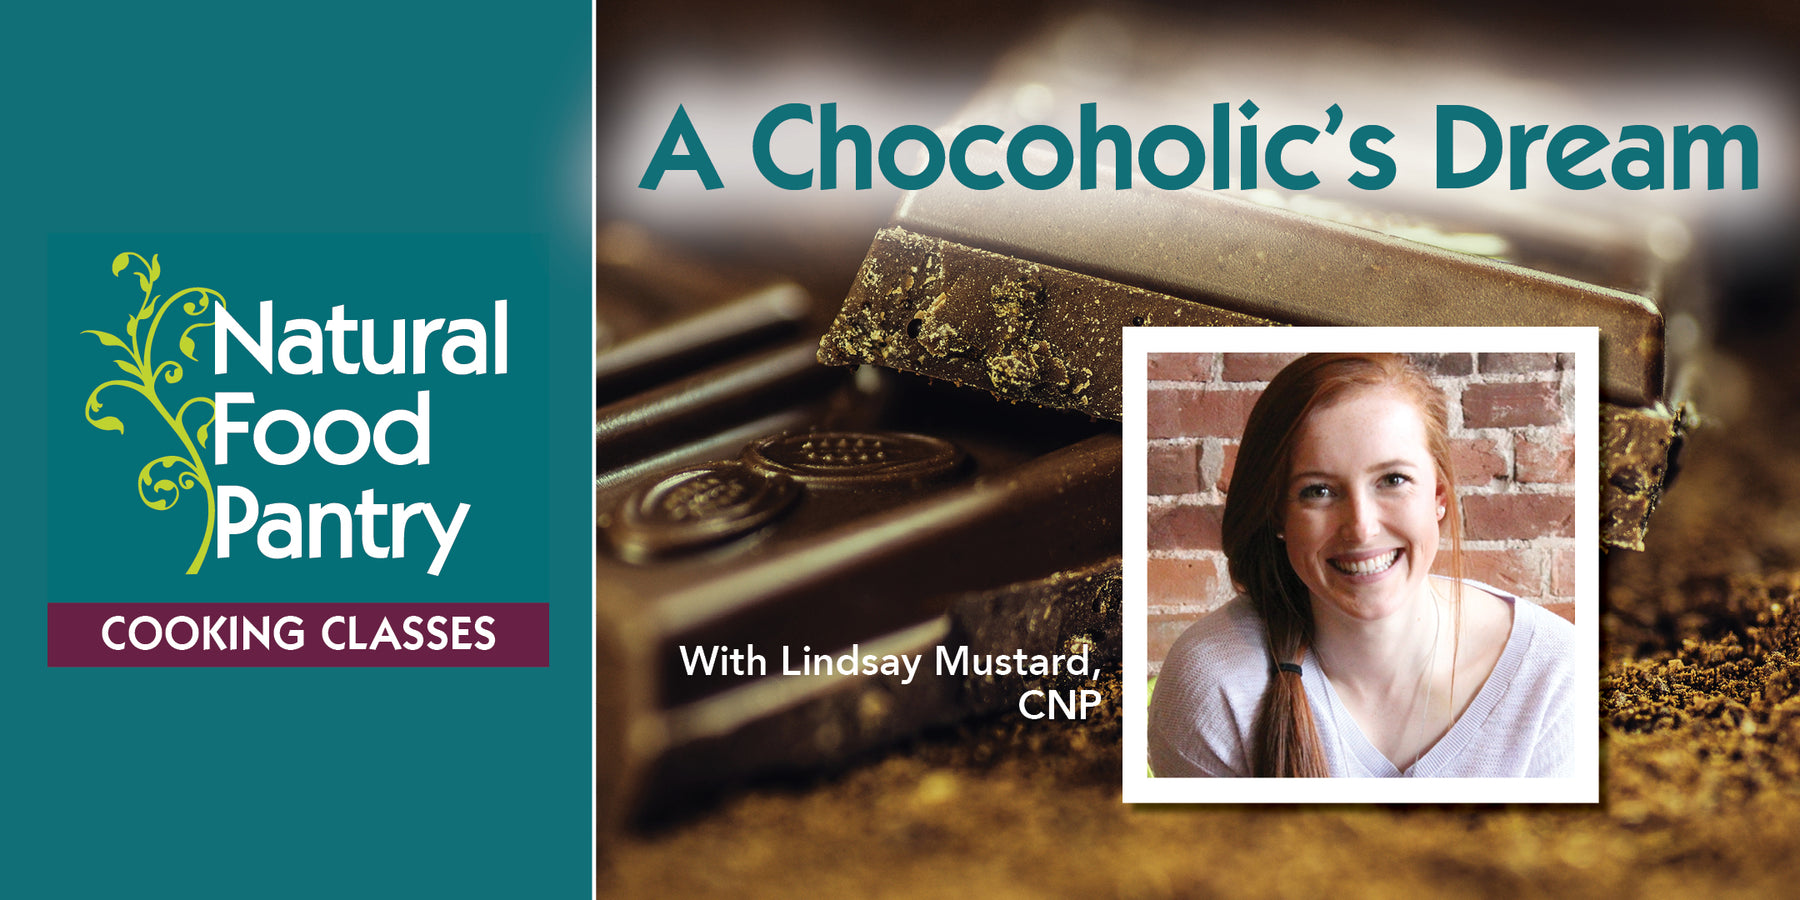 Feb 6: Cooking Class - A Chocoholic's Dream